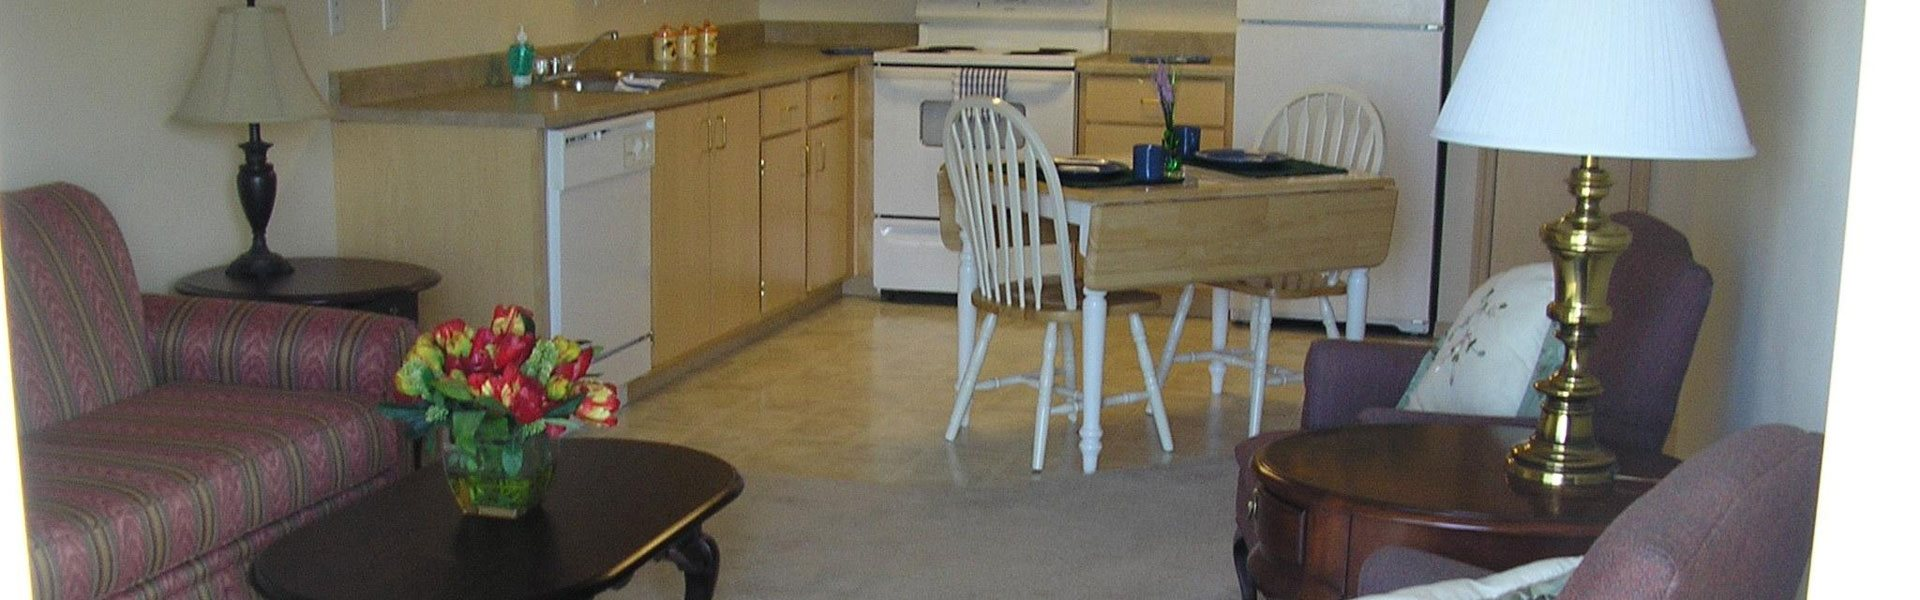 Kitchen Bend, OR Senior Apts l Vintage at Bend Rentals